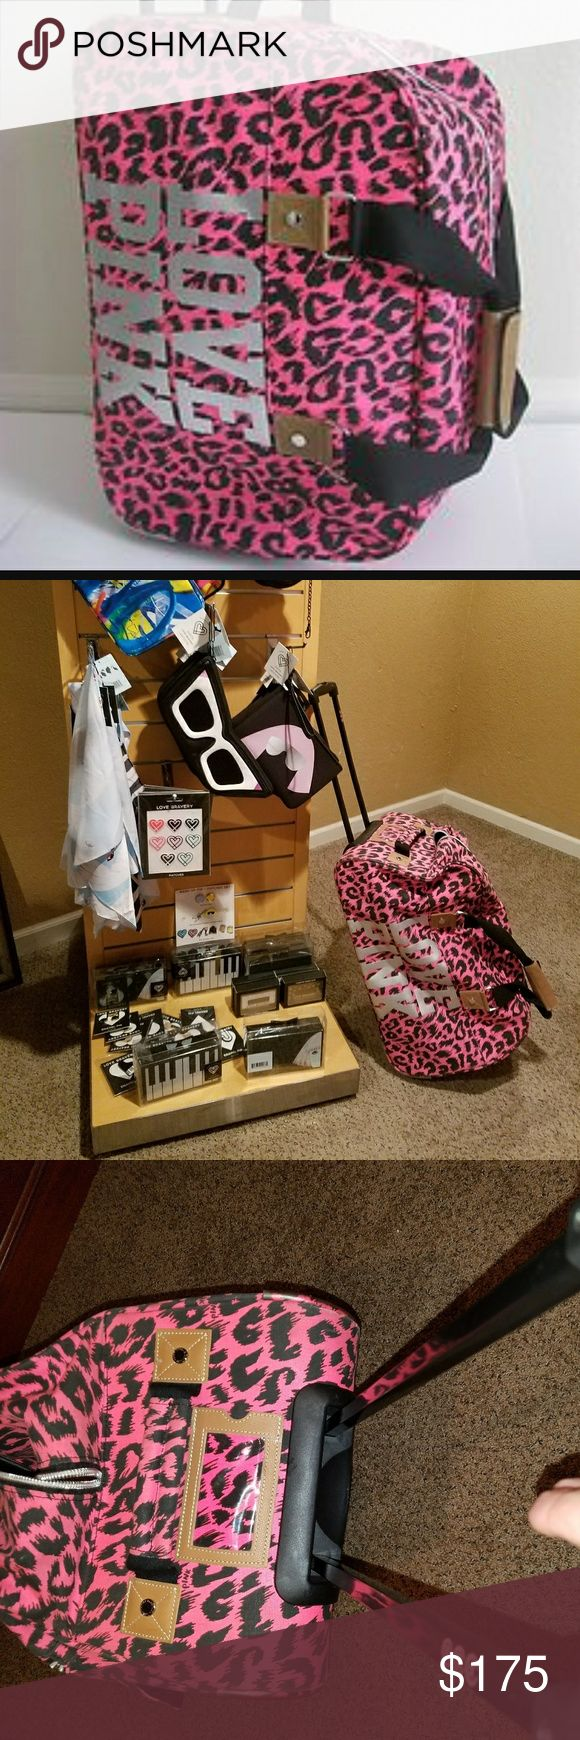 Rare Vs Pink ..Pink Cheetah print Wheelie Eeuc like new. Rare pink cheetah print wheelie. By Vs Pink. Huge bag can fit alot but could also be used as a carry on! Travel in Style! Dont miss out on this great deal! PINK Victoria's Secret Bags Travel Bags